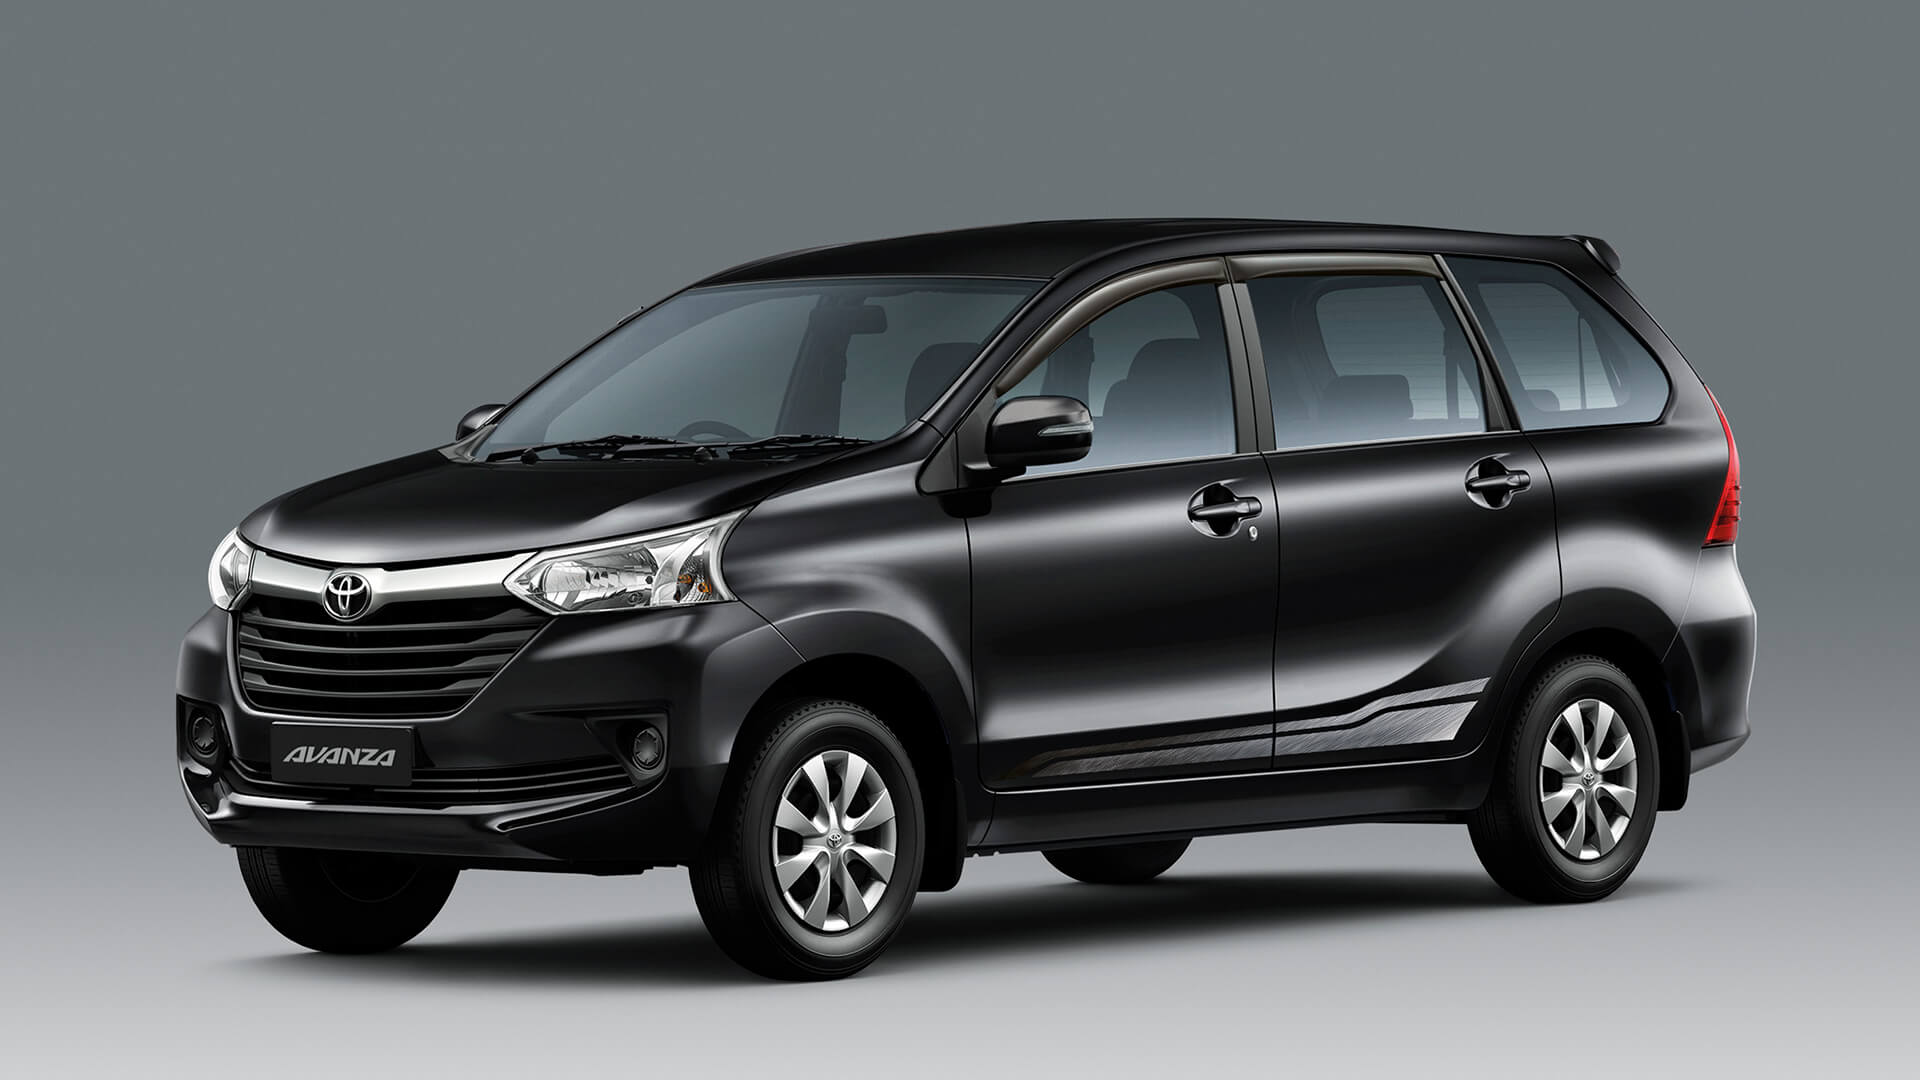 grand new avanza black all camry toyota color hd images and wallpaper latest